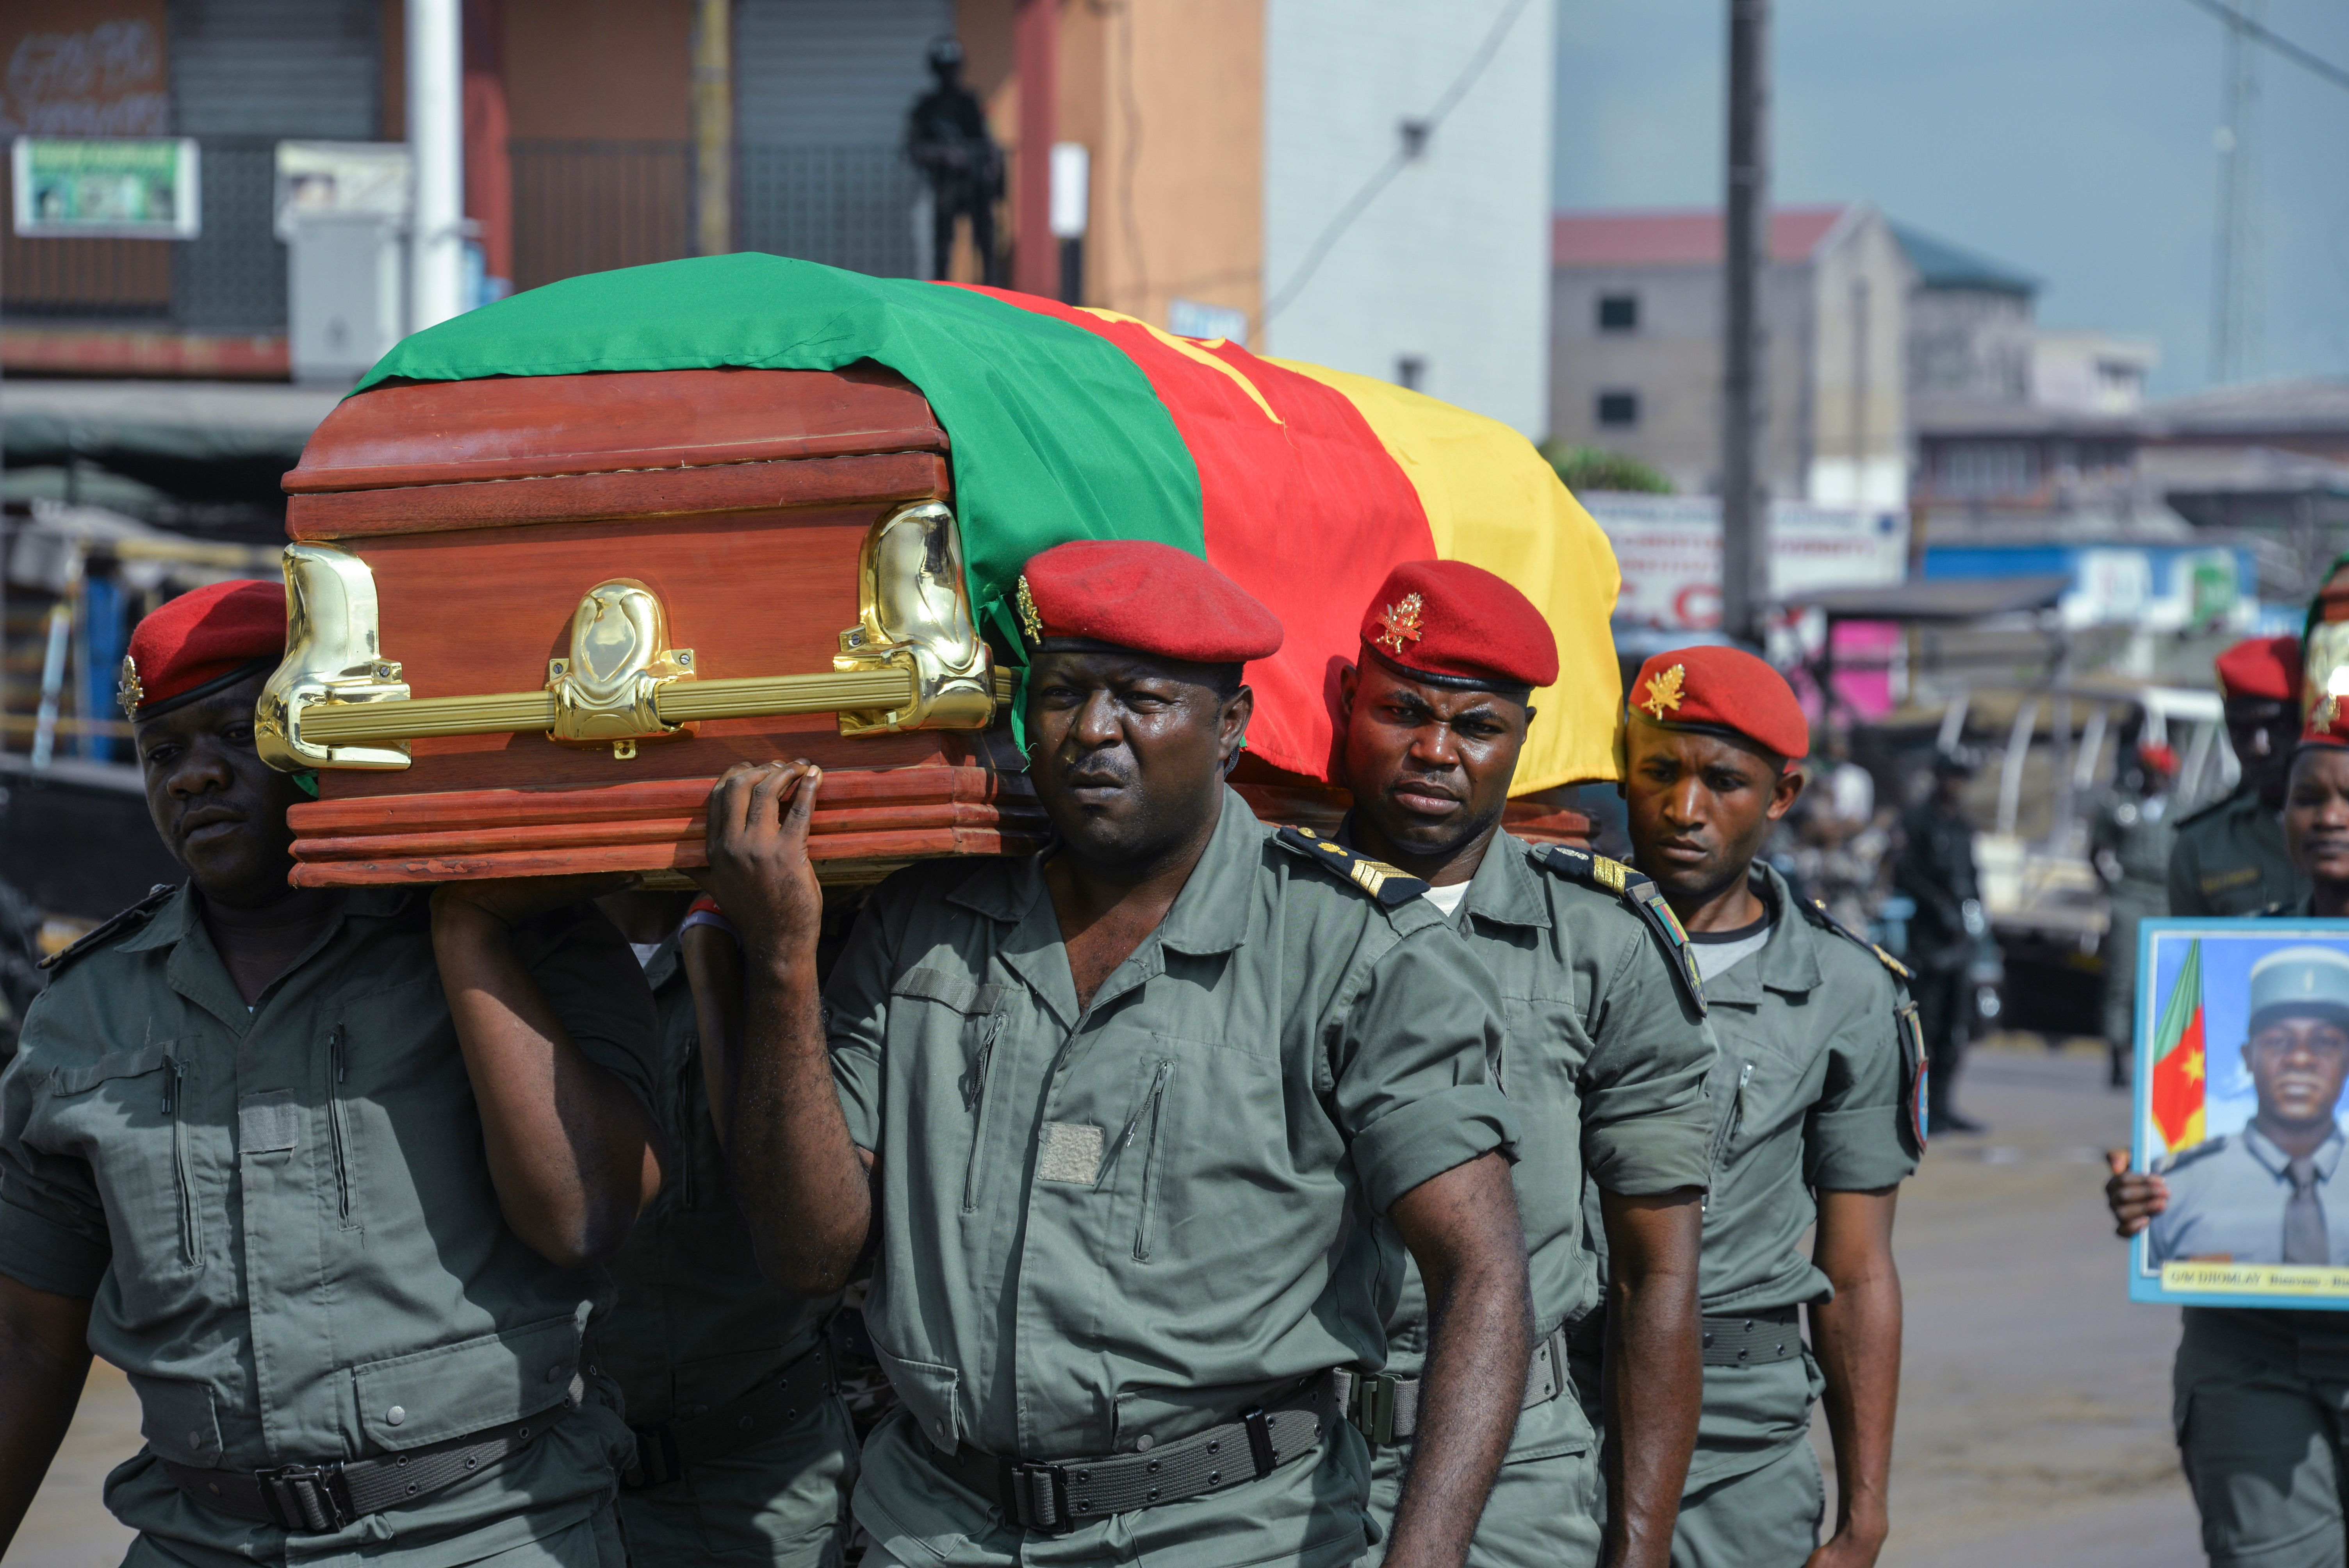 Soldiers carry the coffin of one of the four soldiers killed in the violence that erupted in the Northwest and Southwest regions of Cameroon in Bamenda on Nov. 17, 2017.